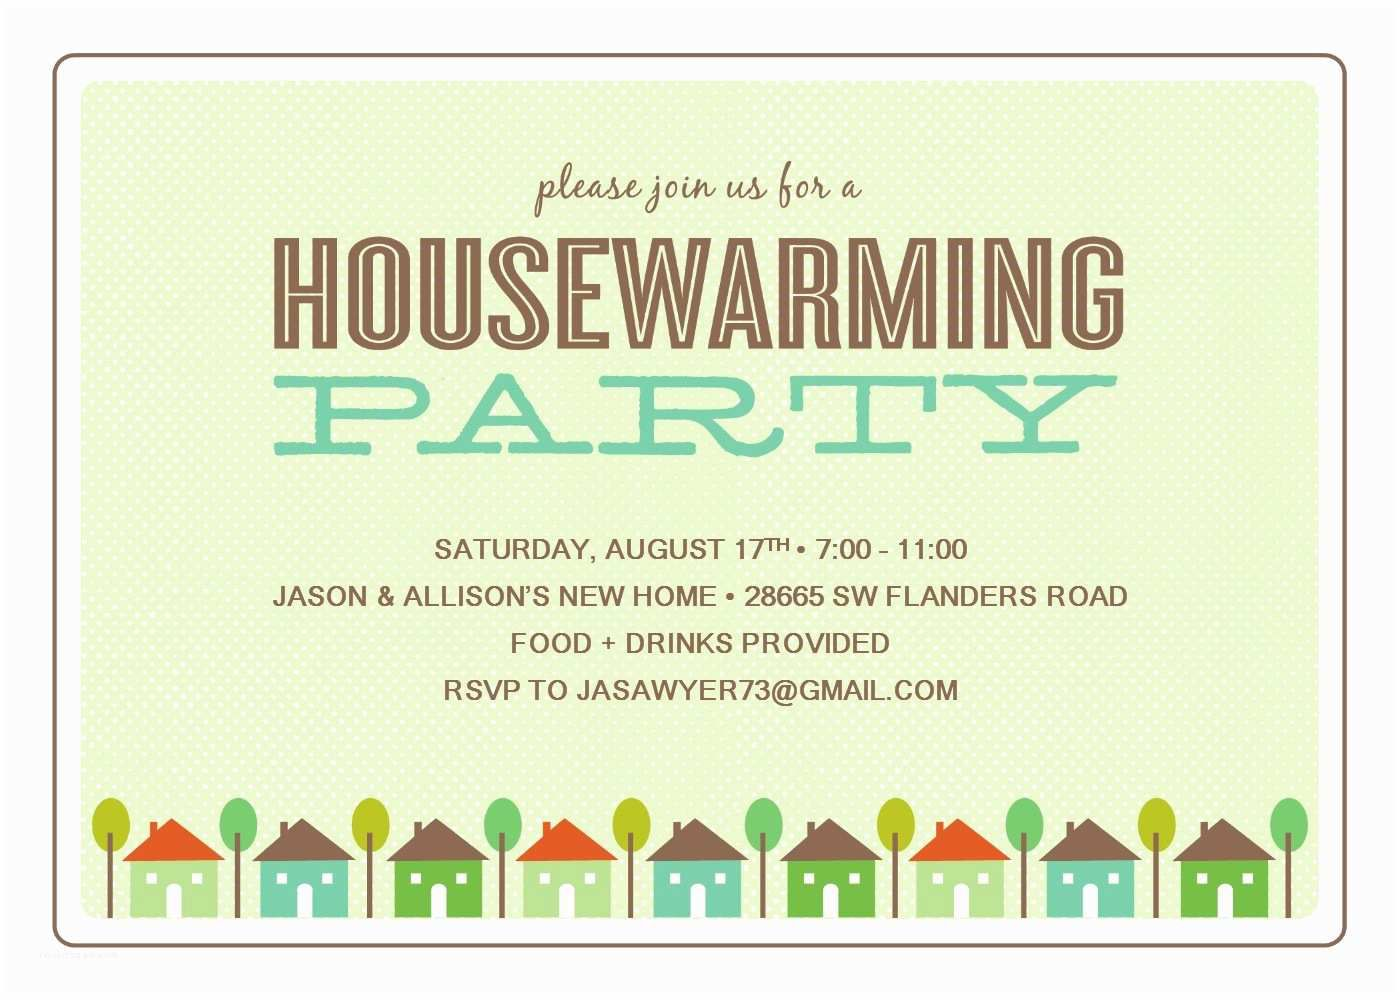 012 Unusual Housewarming Party Invitation Template Design  Templates Free Download CardFull